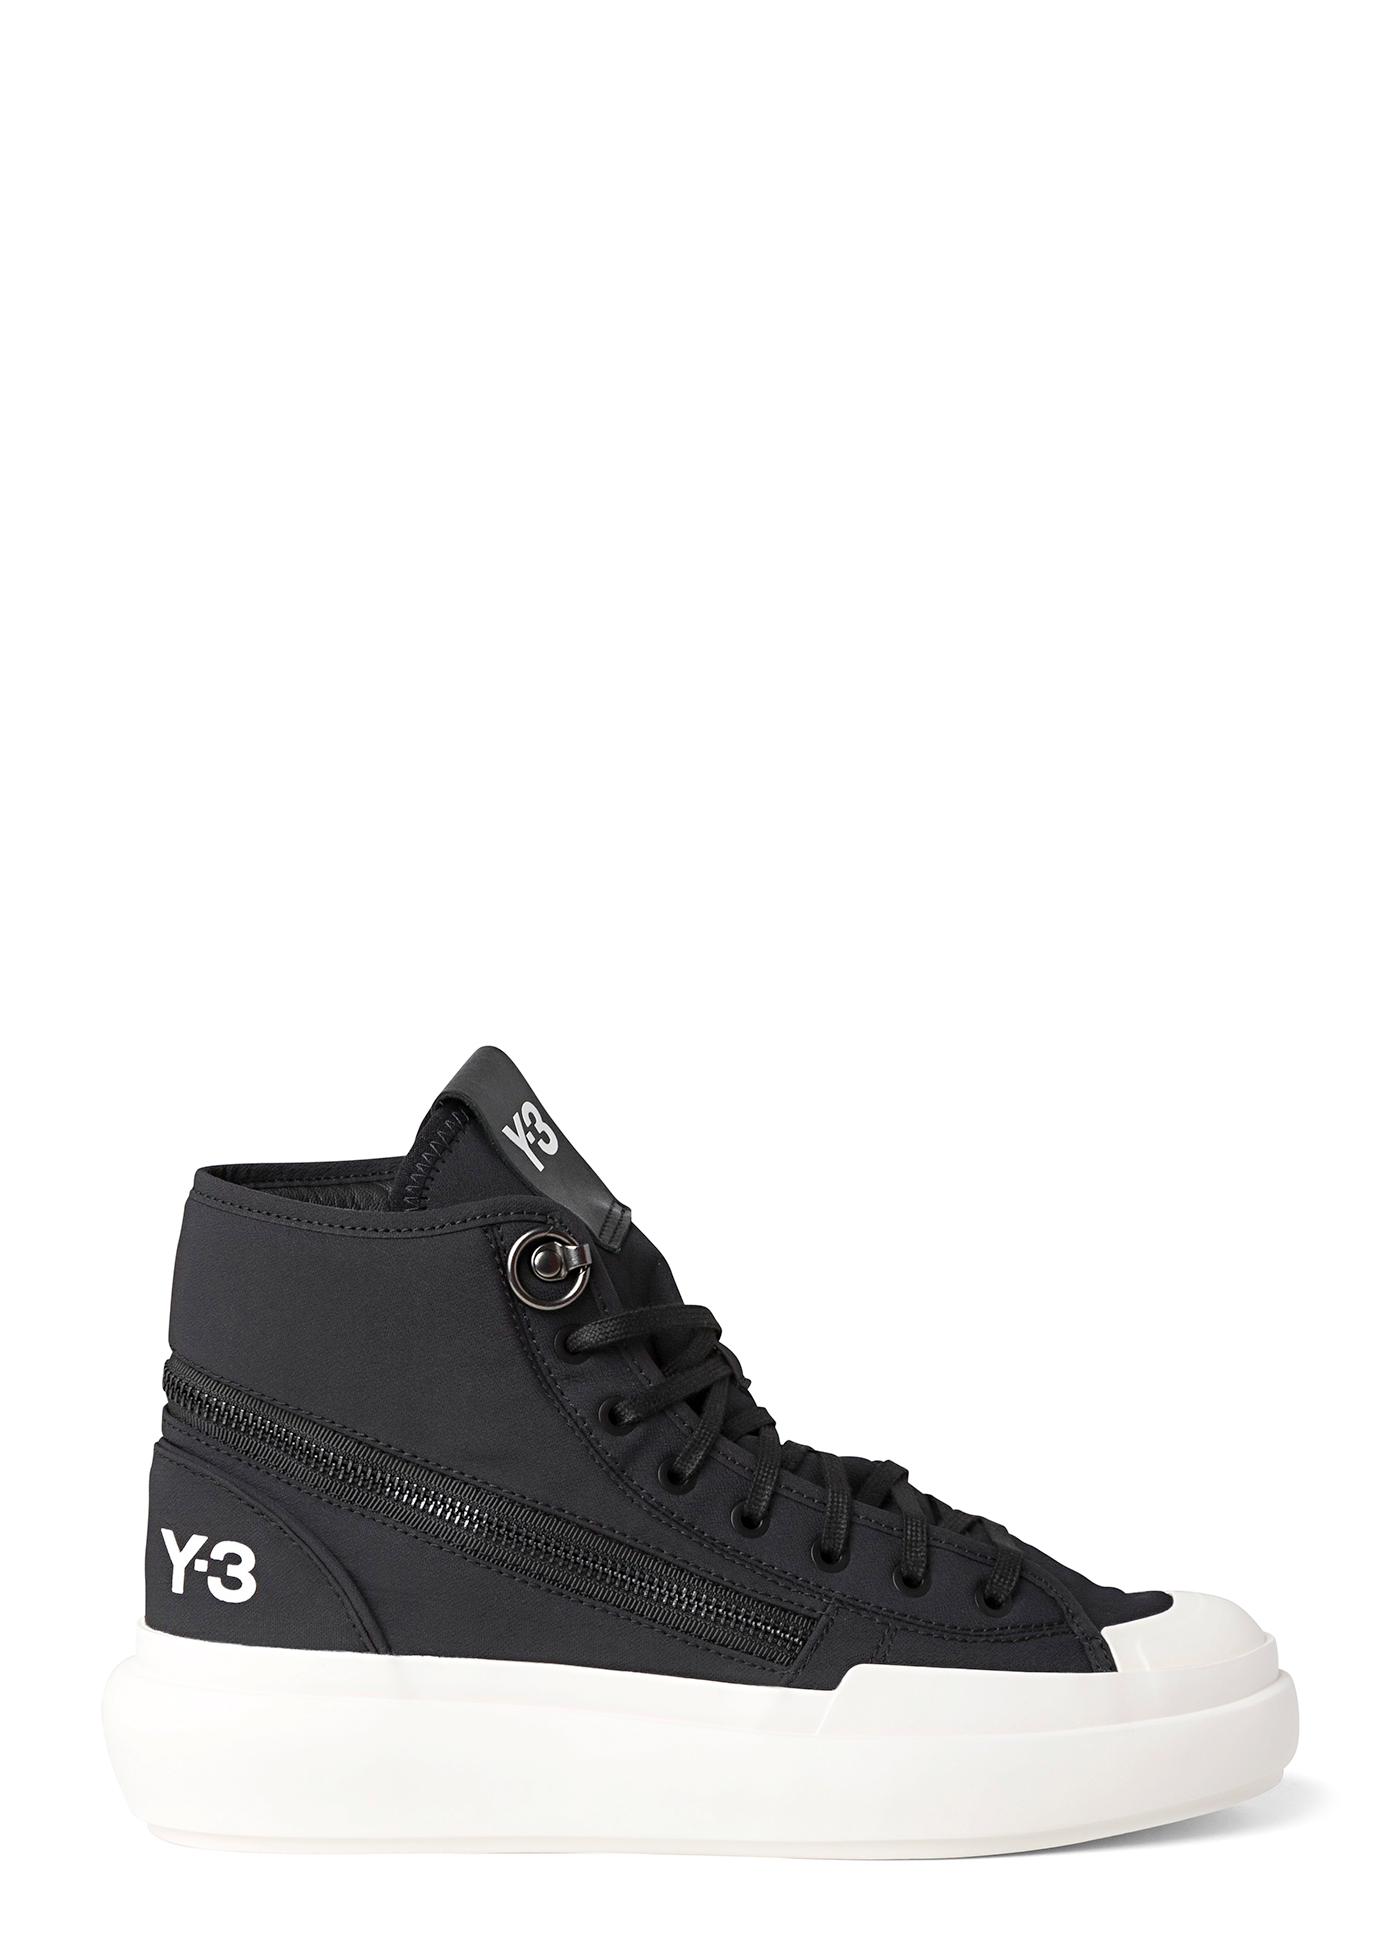 Y-3 CLASSIC COURT HIGH V1 image number 0